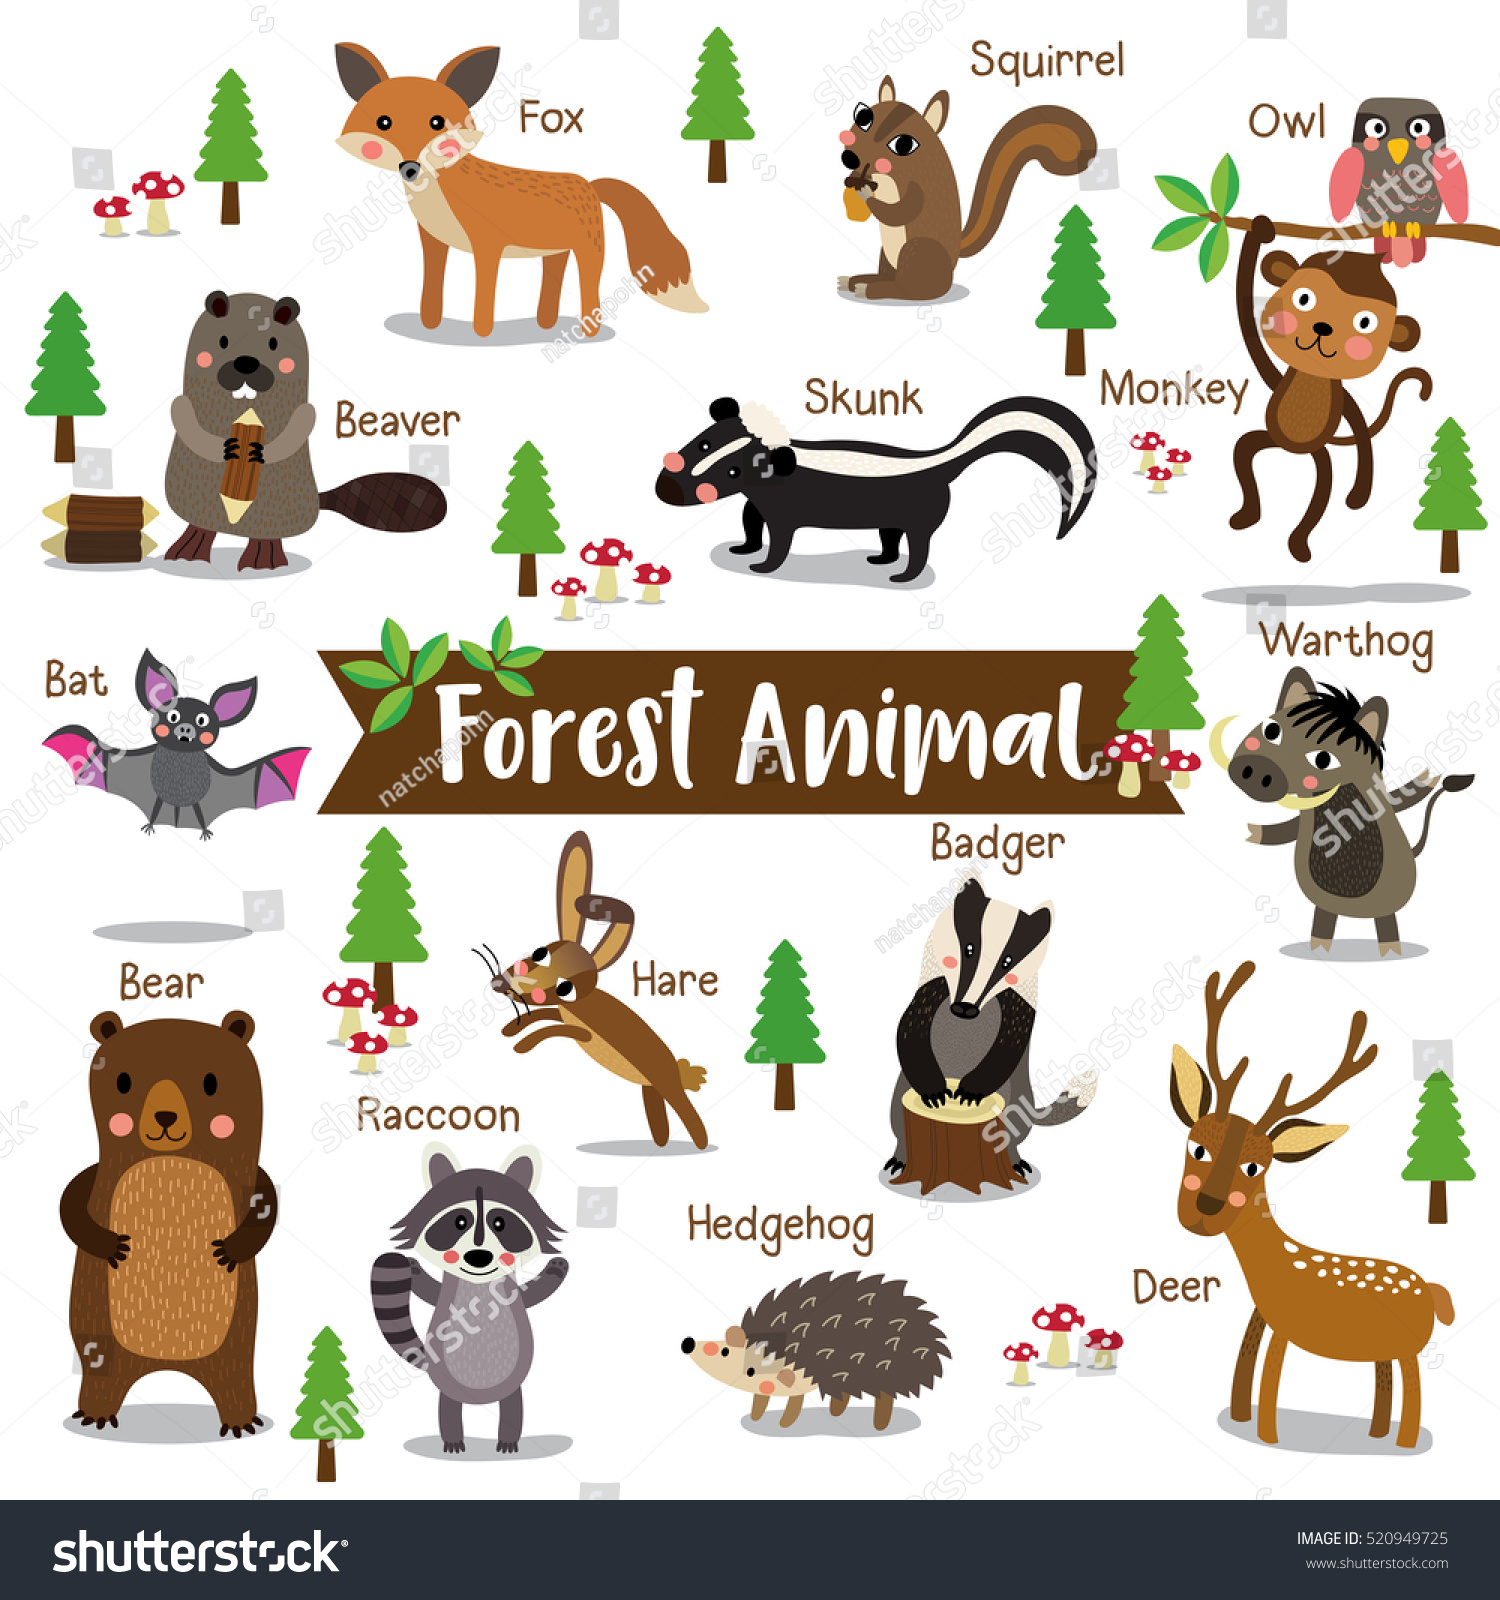 Forest Animal Cartoon On White Background With Animal Name